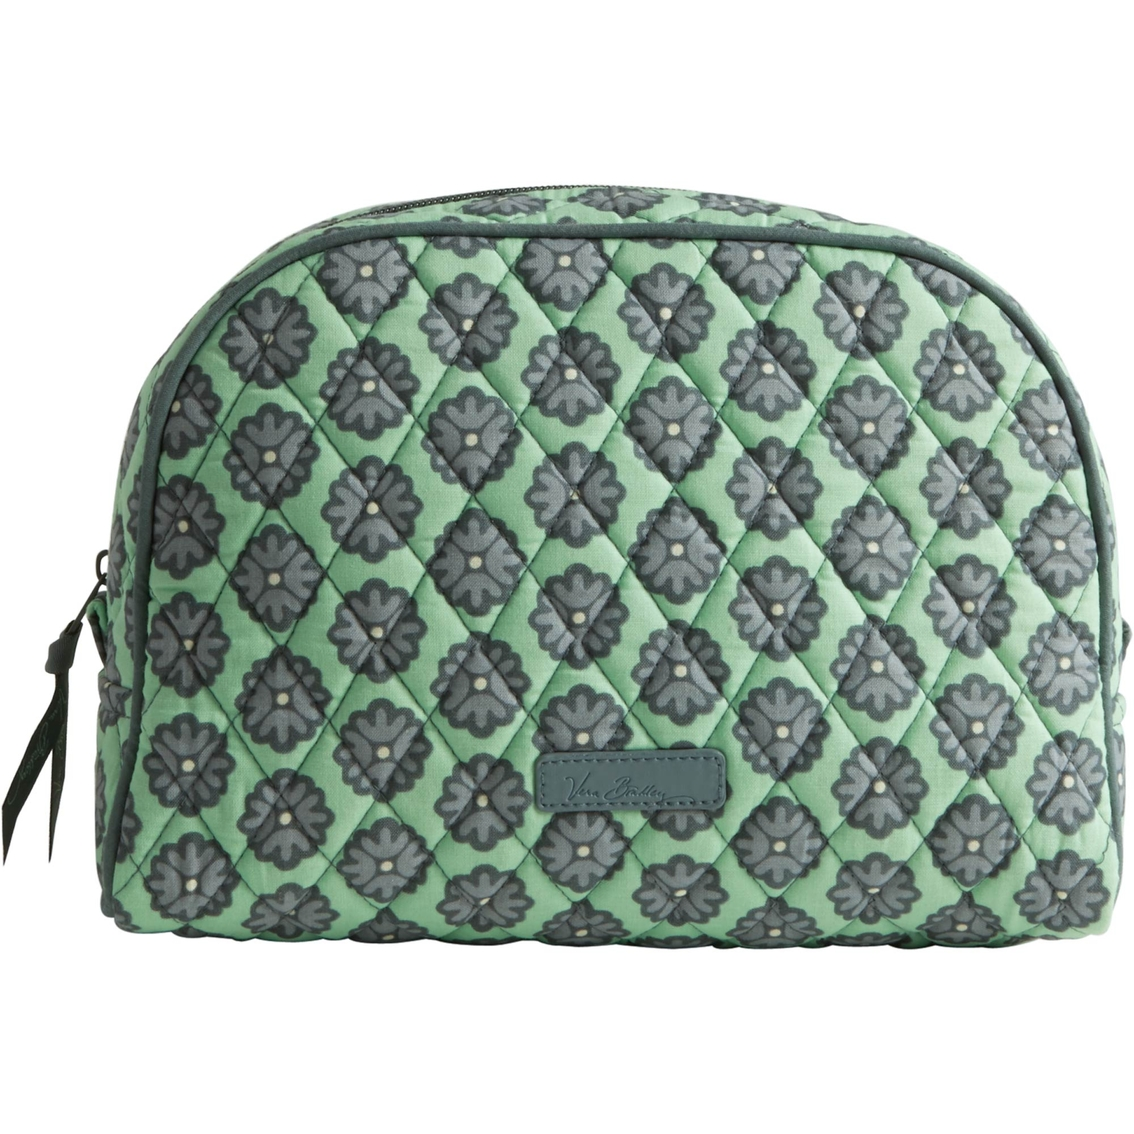 Vera Bradley Large Zip Cosmetic Bag, Nomadic Blossoms | Shop By ...